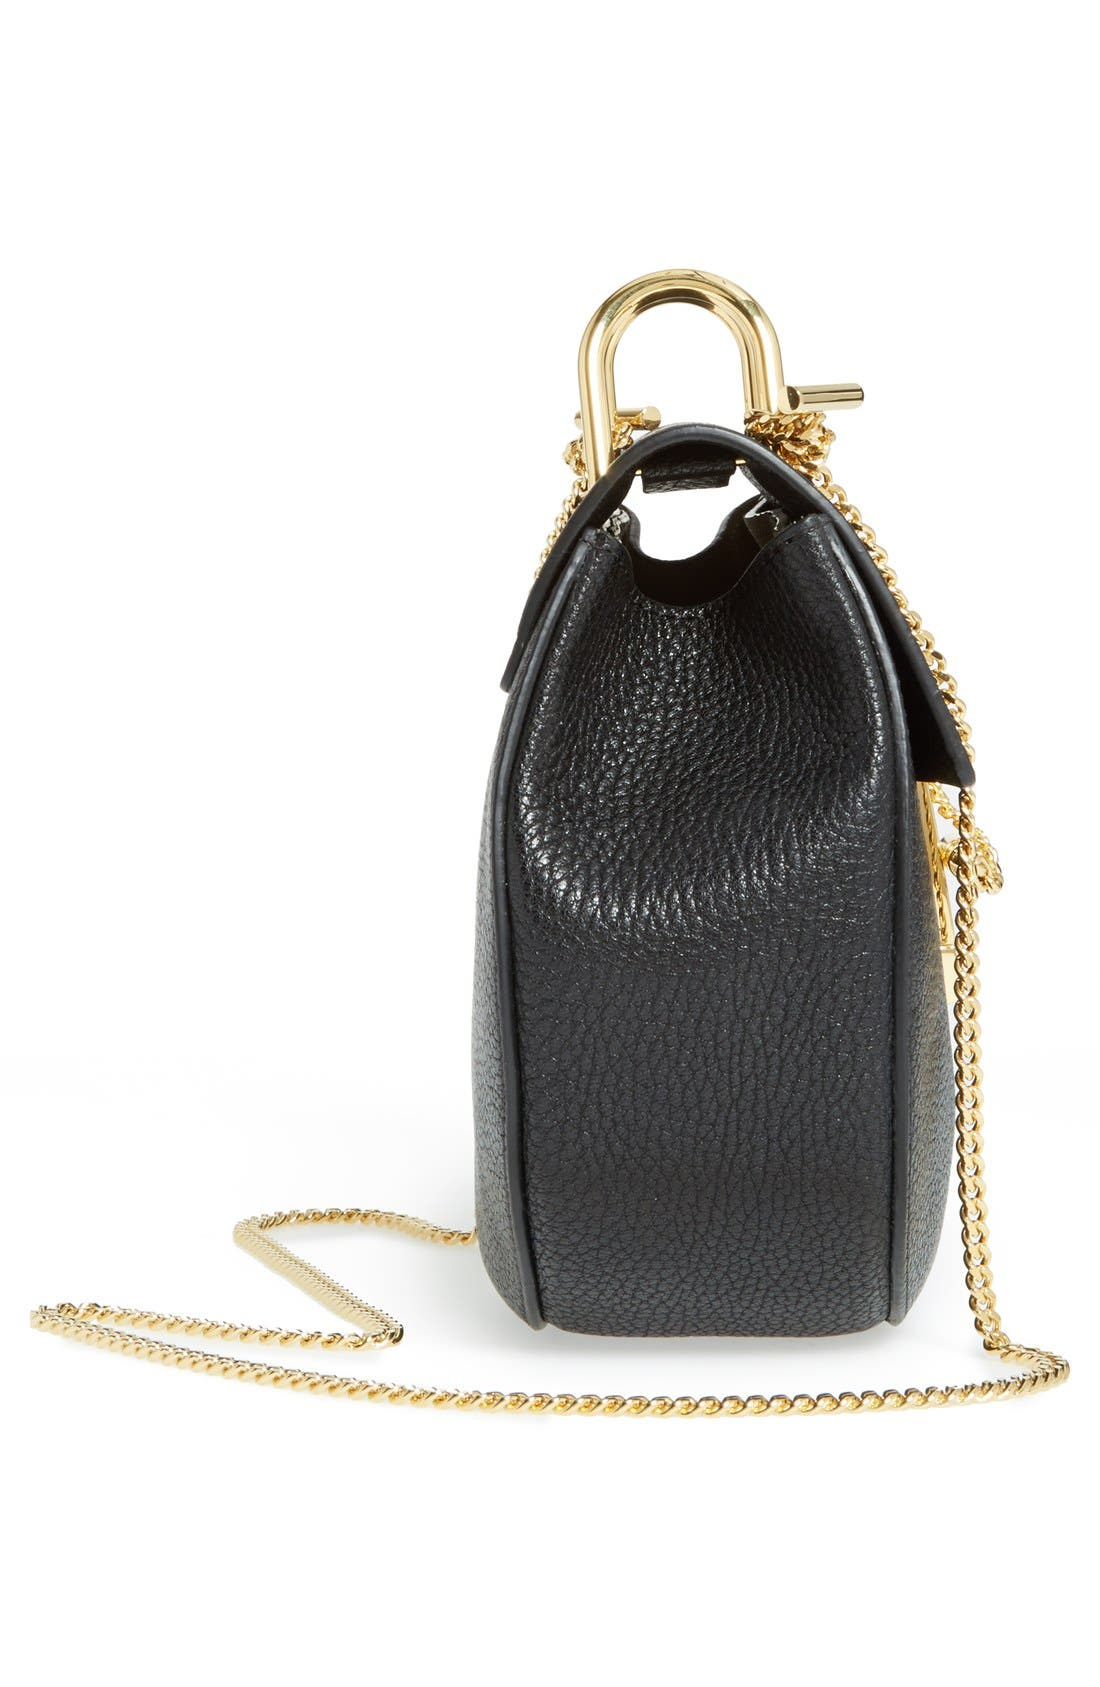 Drew Leather Shoulder Bag,                             Alternate thumbnail 5, color,                             Black Gold Hrdwre